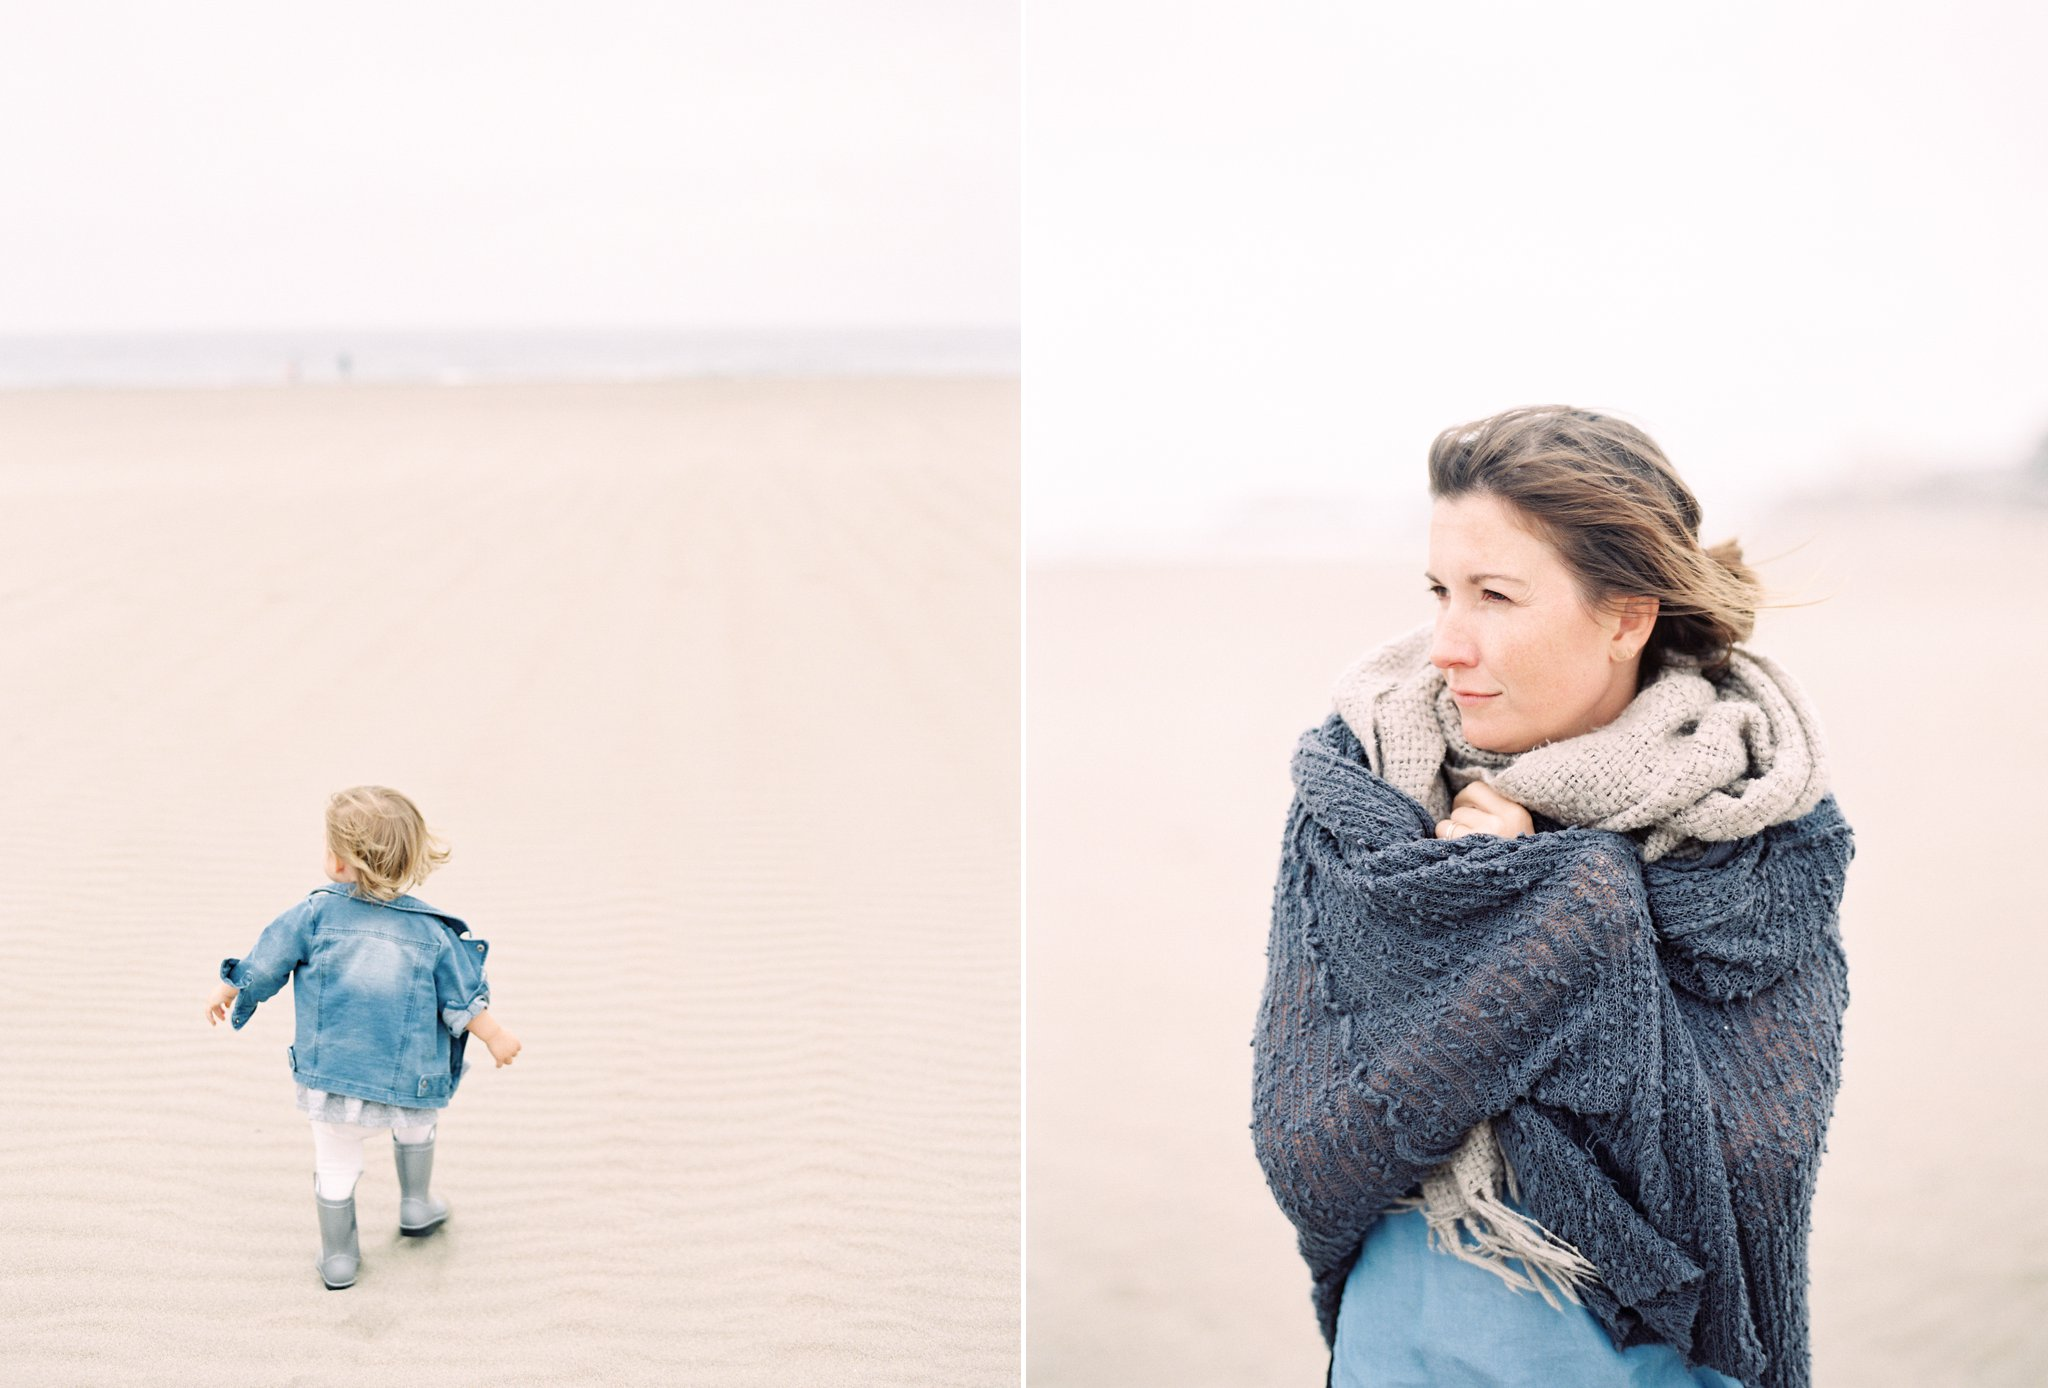 san francisco family session san francisco family photographer shannon griffin photography_0074.jpg